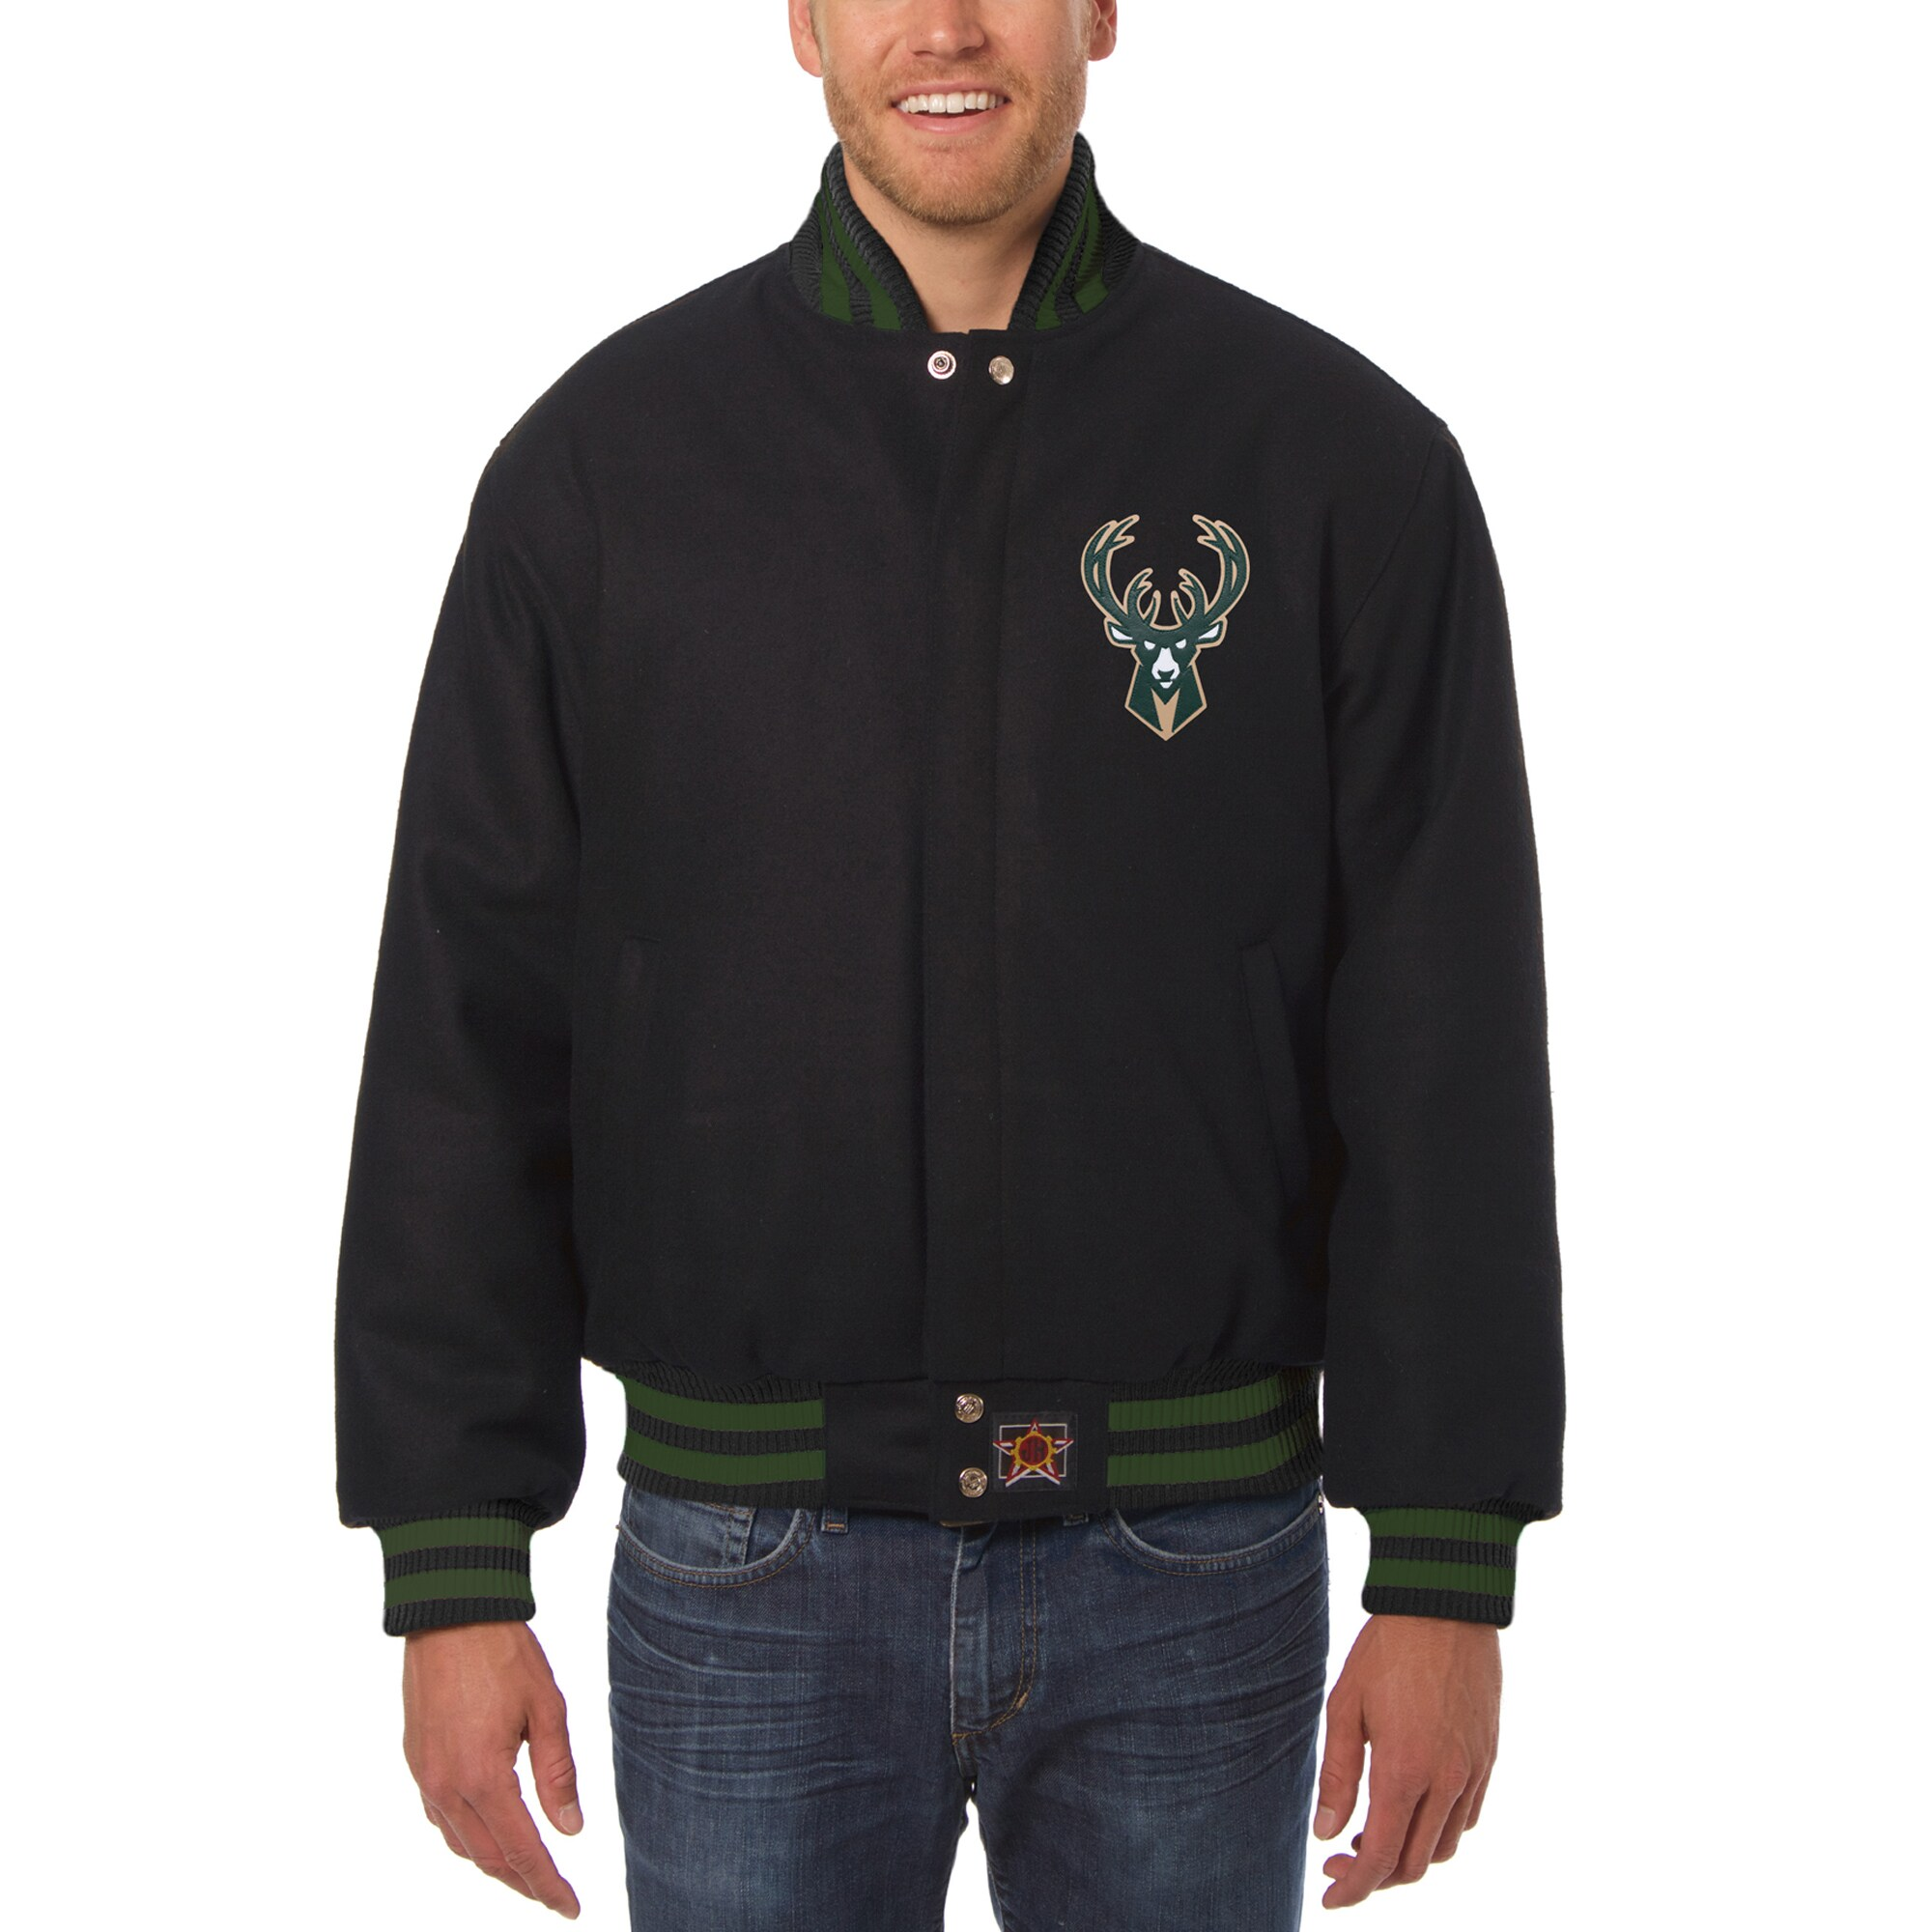 Milwaukee Bucks JH Design Big & Tall All Wool Jacket with Leather Logo - Black